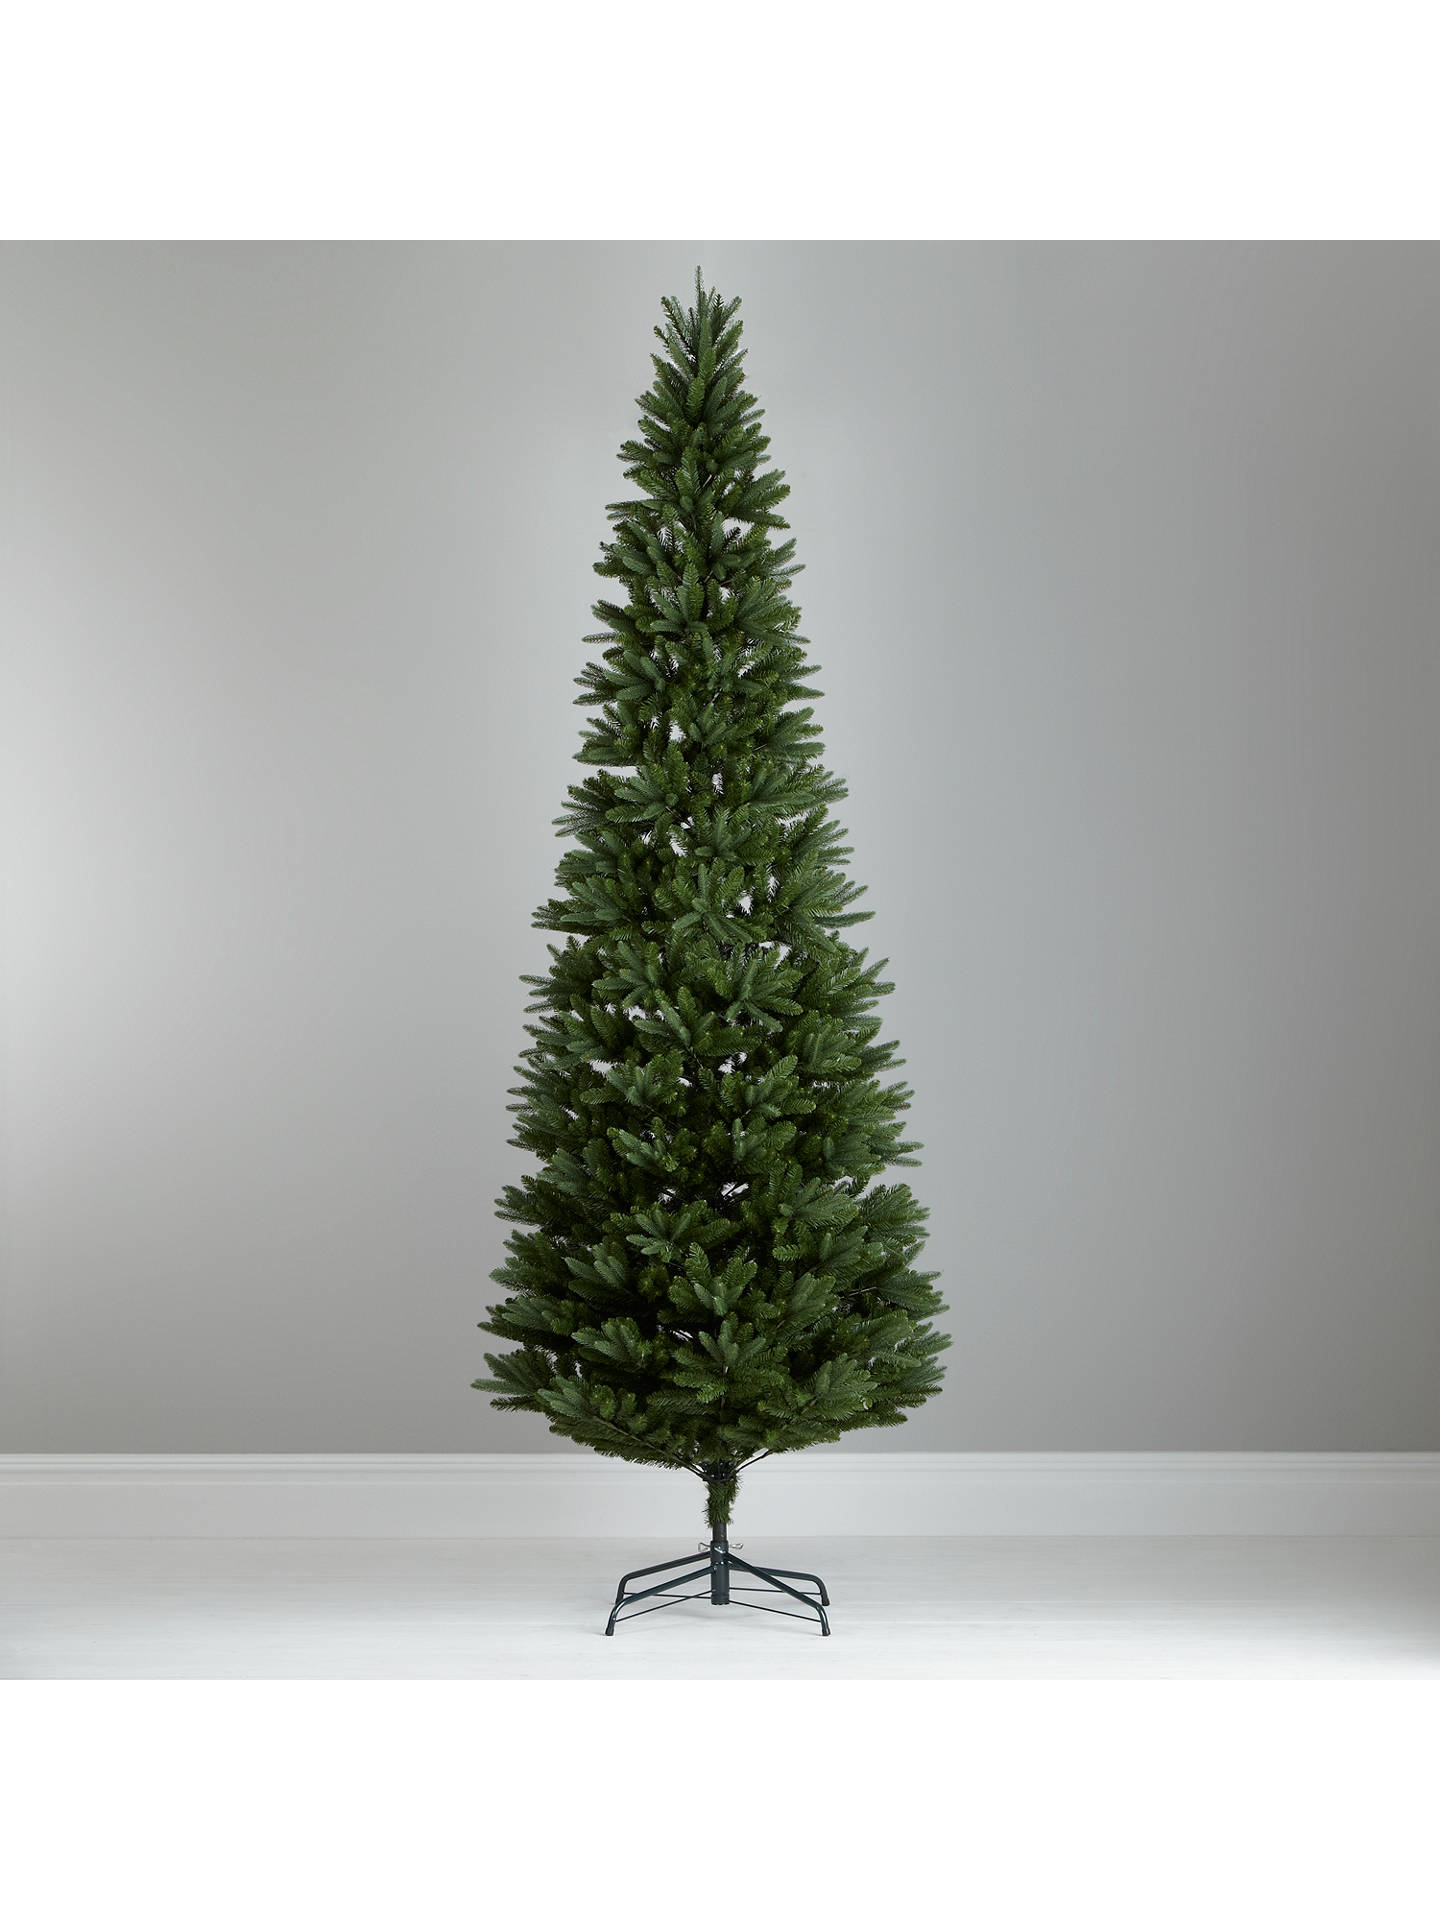 BuyJohn Lewis Aspen Slim Christmas Tree, Green, 8ft Online at johnlewis.com ...